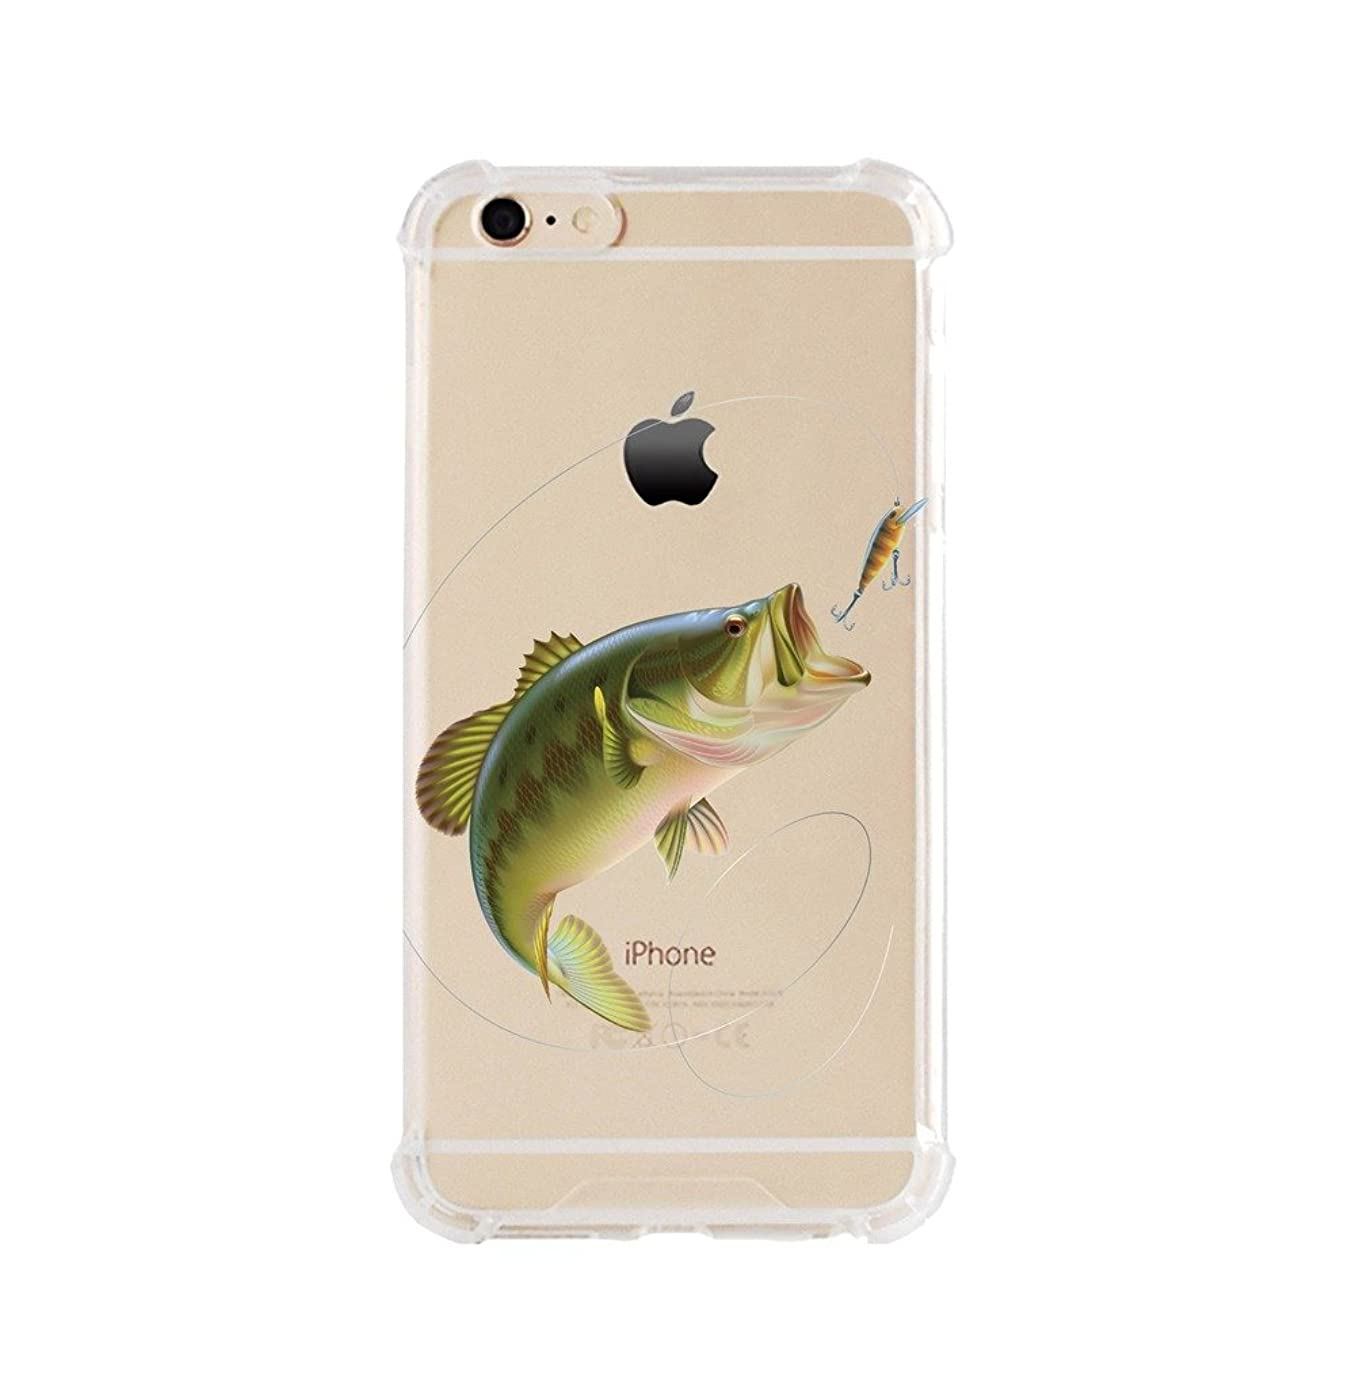 iPhone 6/6s Shock Absorption Case (4.7 inch screen), fishing Design